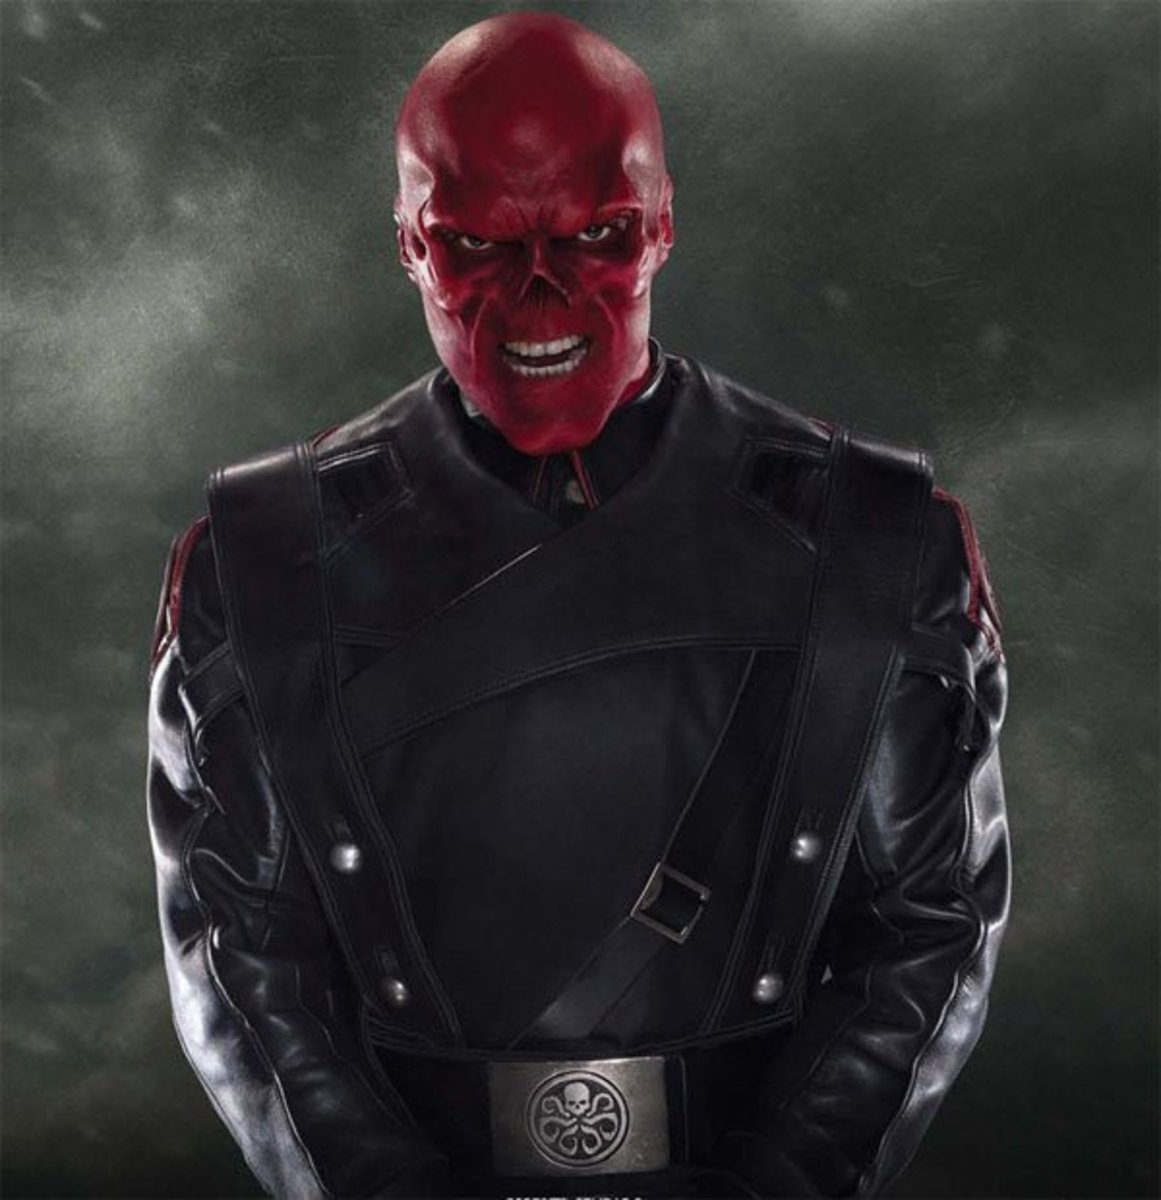 Red Skull as portrayed by Hugo Weaving in the movie Captain America: The First Avenger